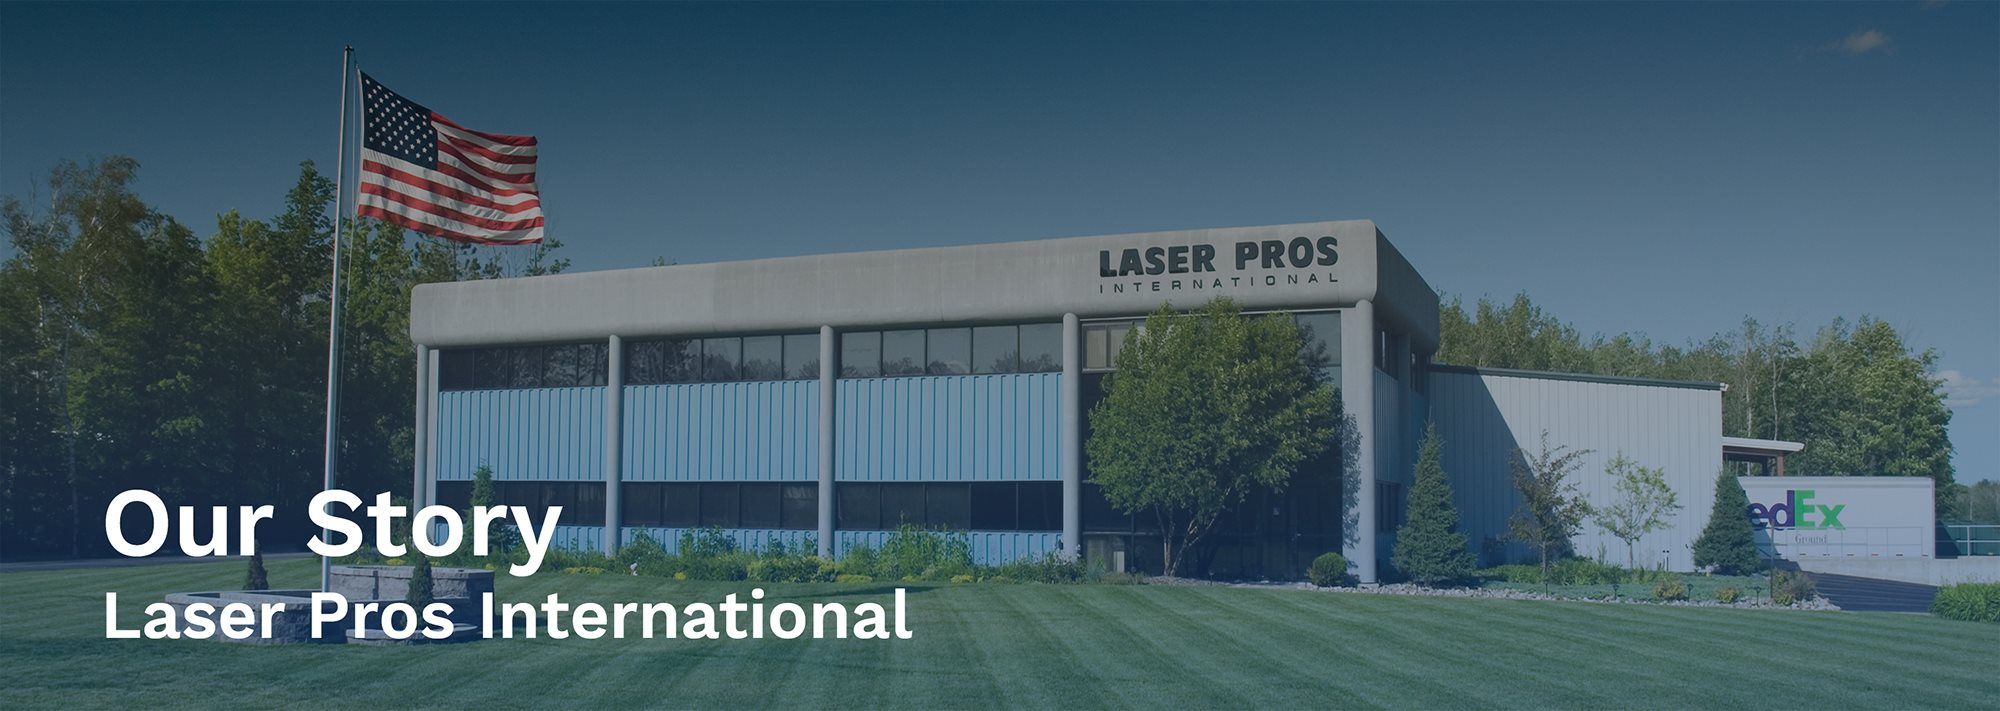 Our Story - Laser Pros International